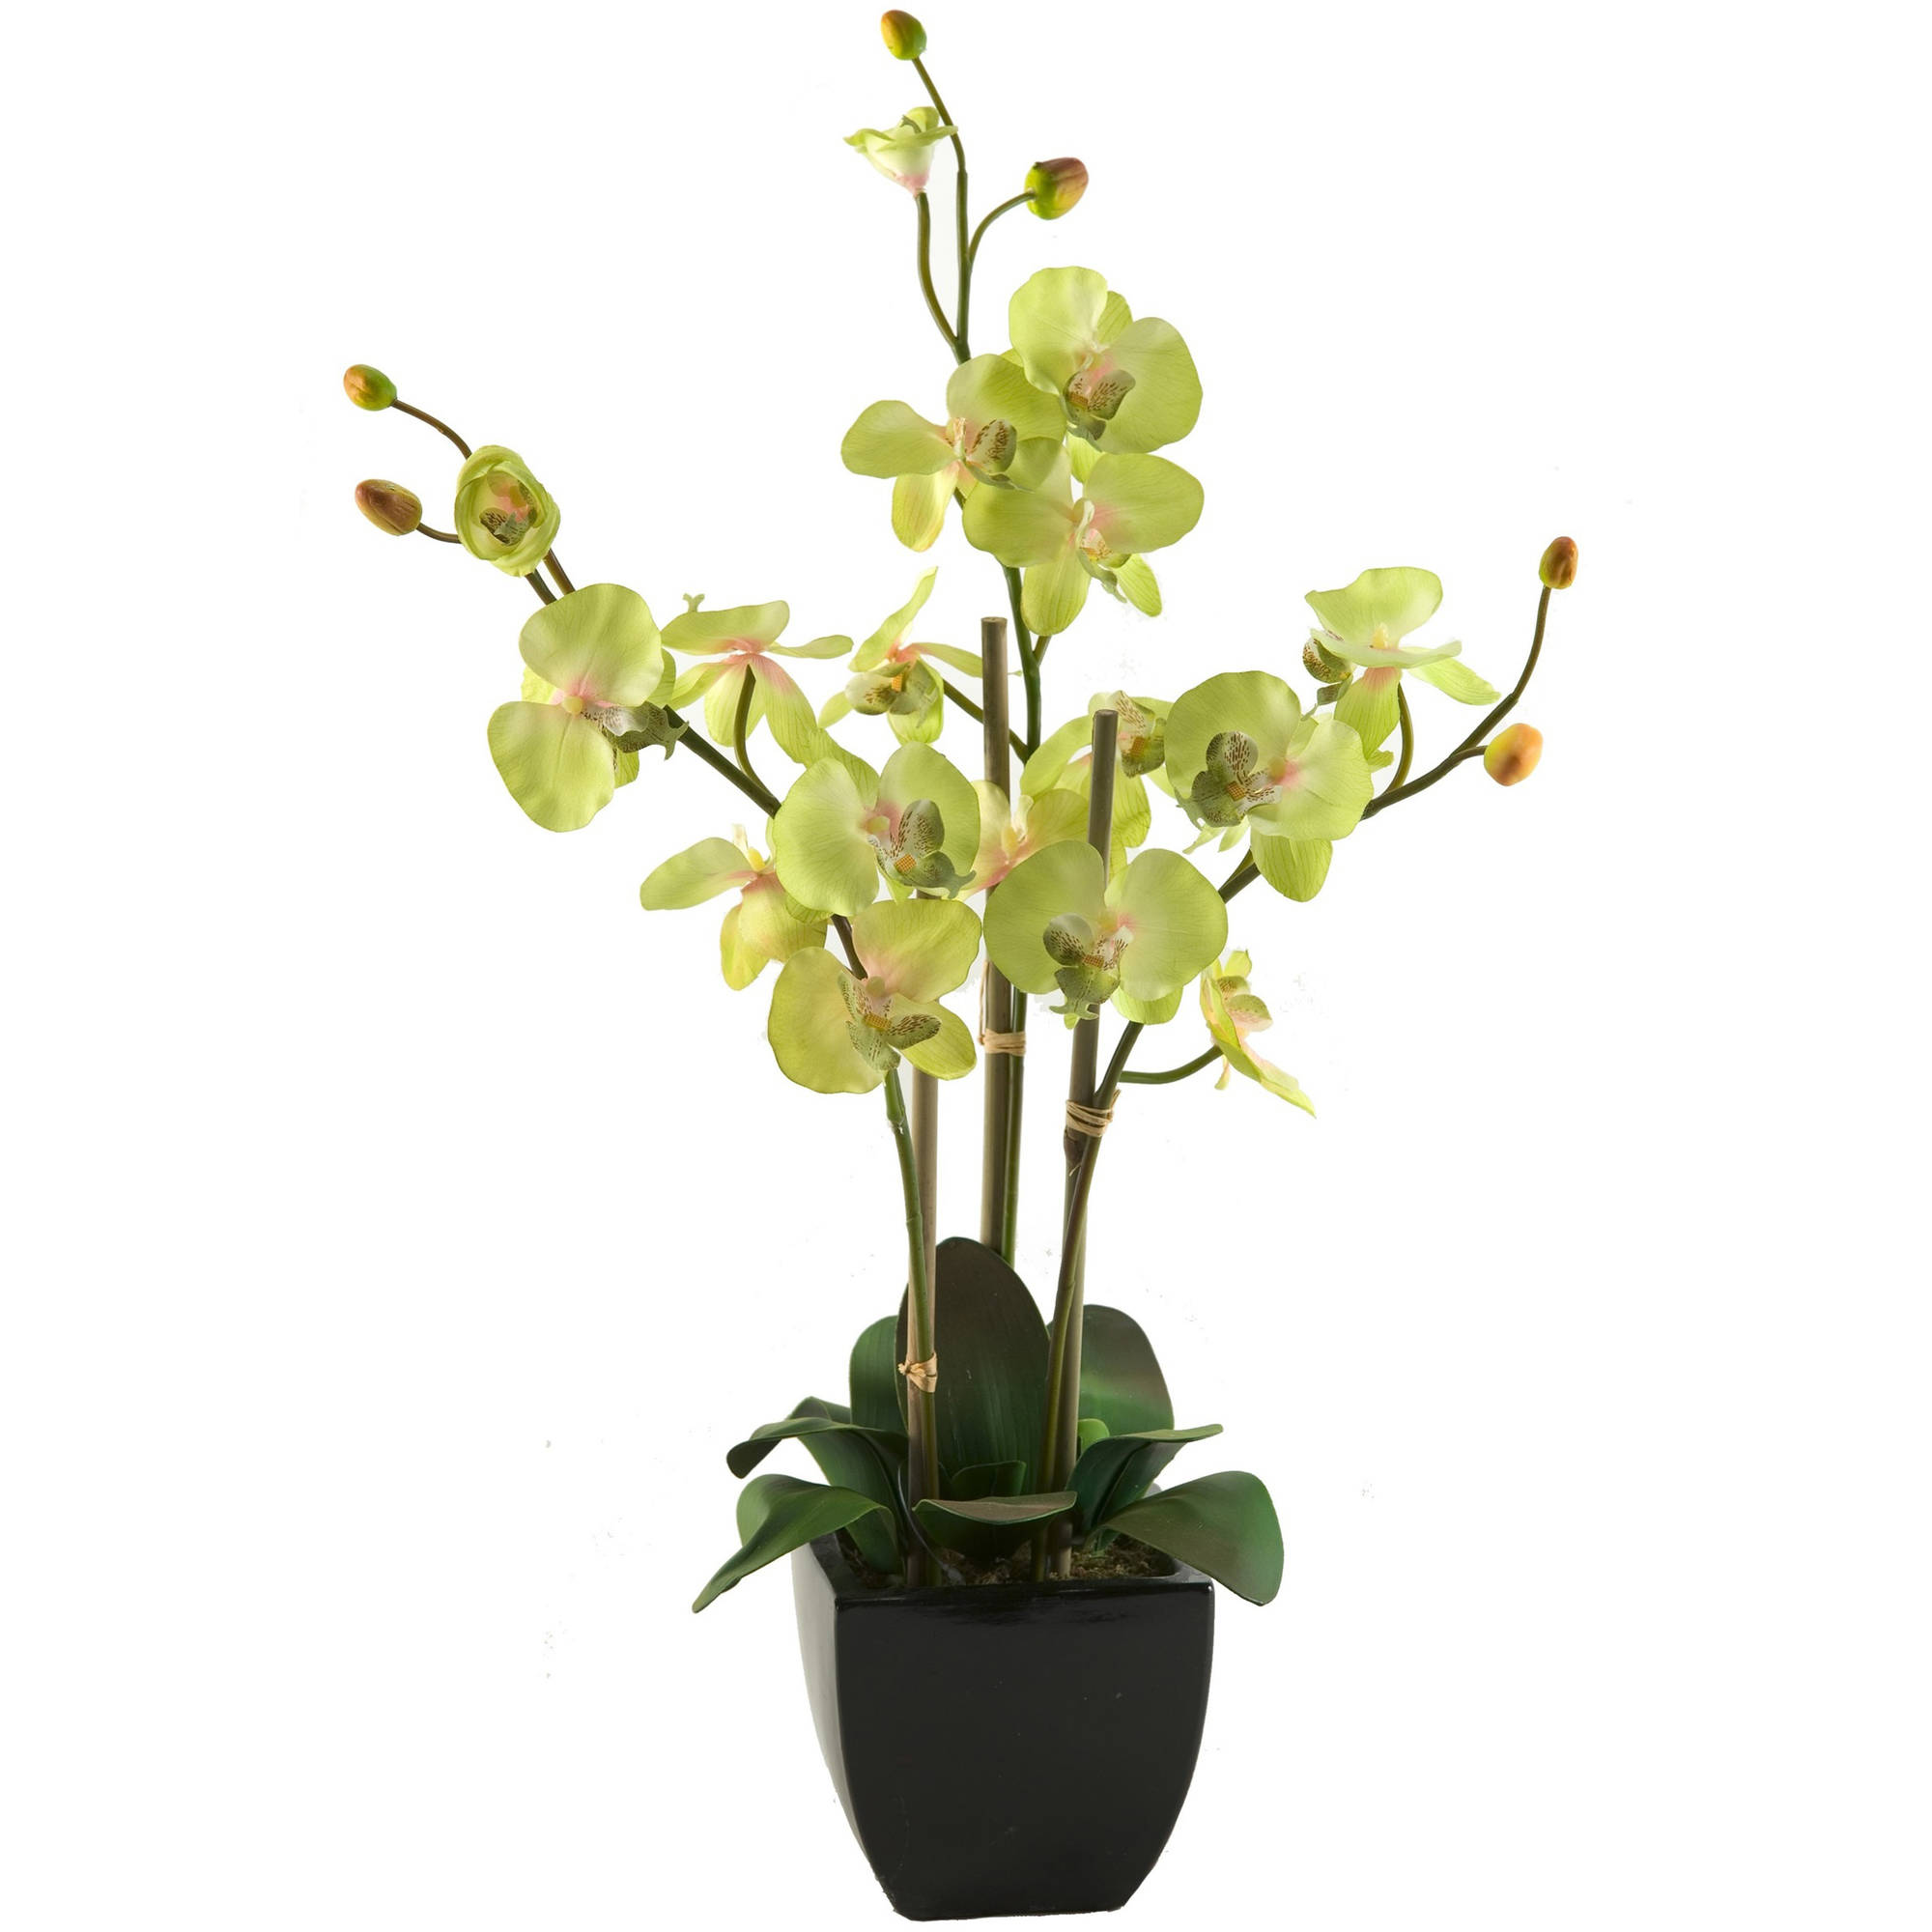 D&W Silks Green Phael Orchids in Black Ceramic Planter